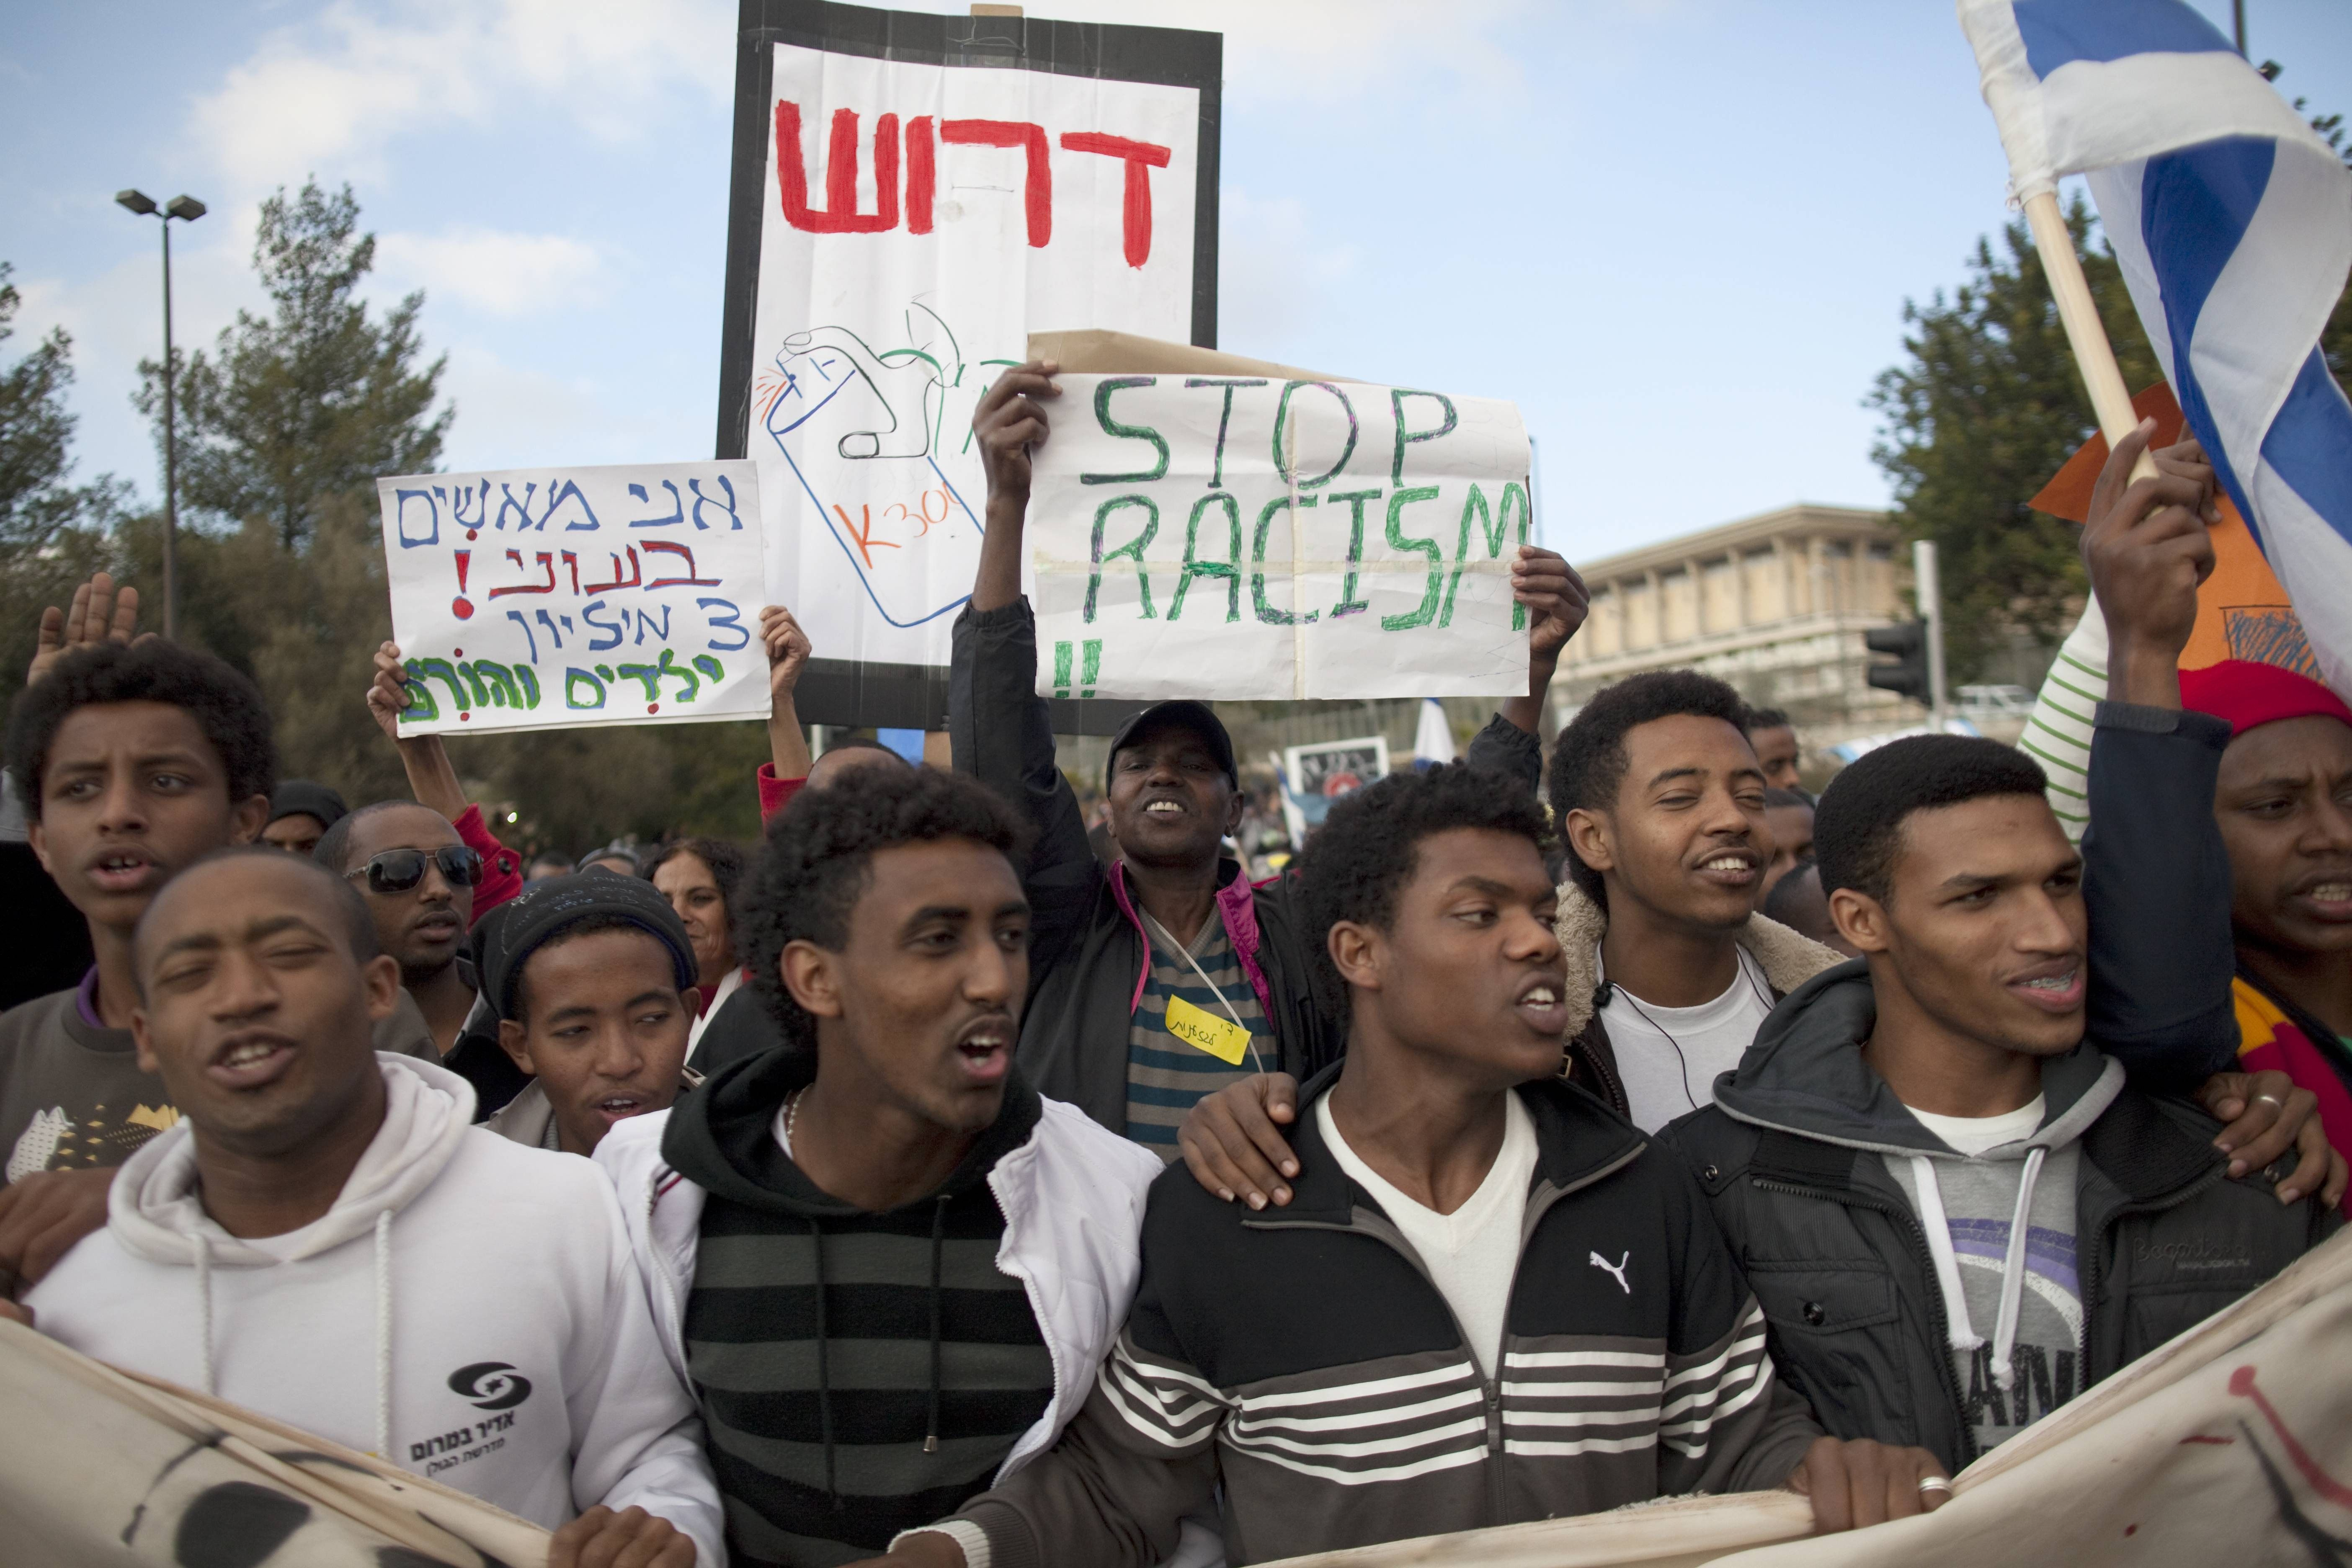 Httpwww Overlordsofchaos Comhtmlorigin Of The Word Jew Html: I'm Black And Jewish. Israel Is Not My Promised Land